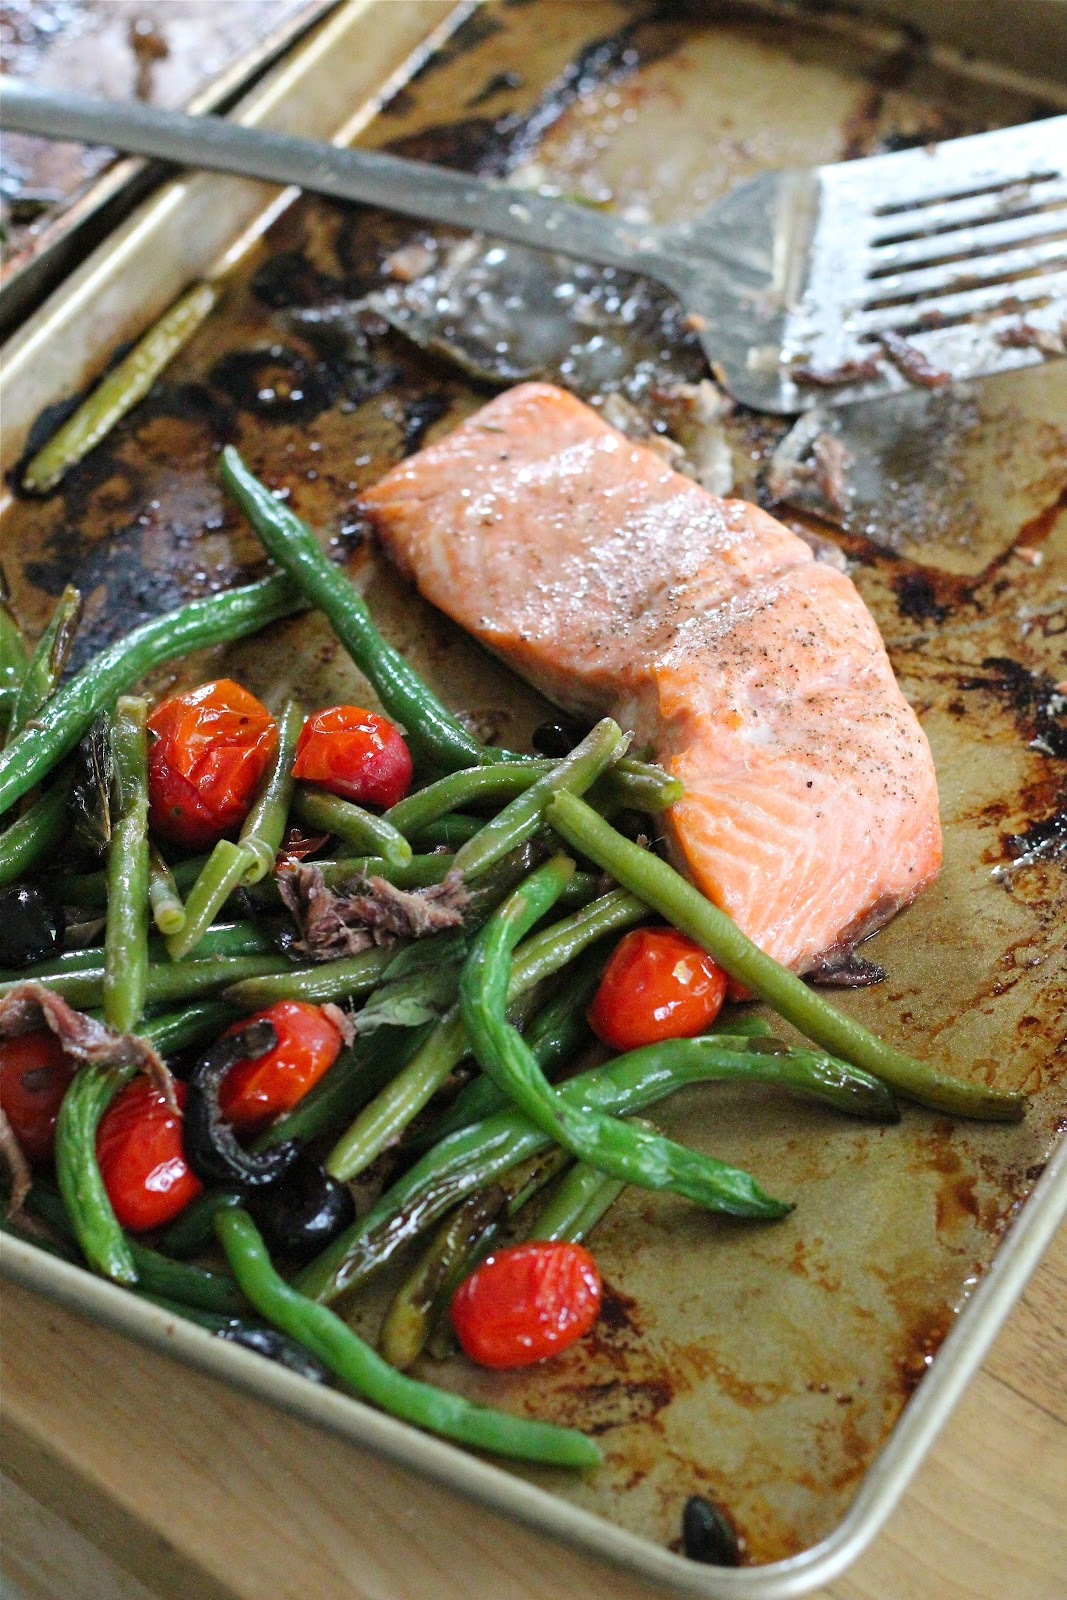 Baked Salmon With Green Beans And Tomatoes From Eatgood4life